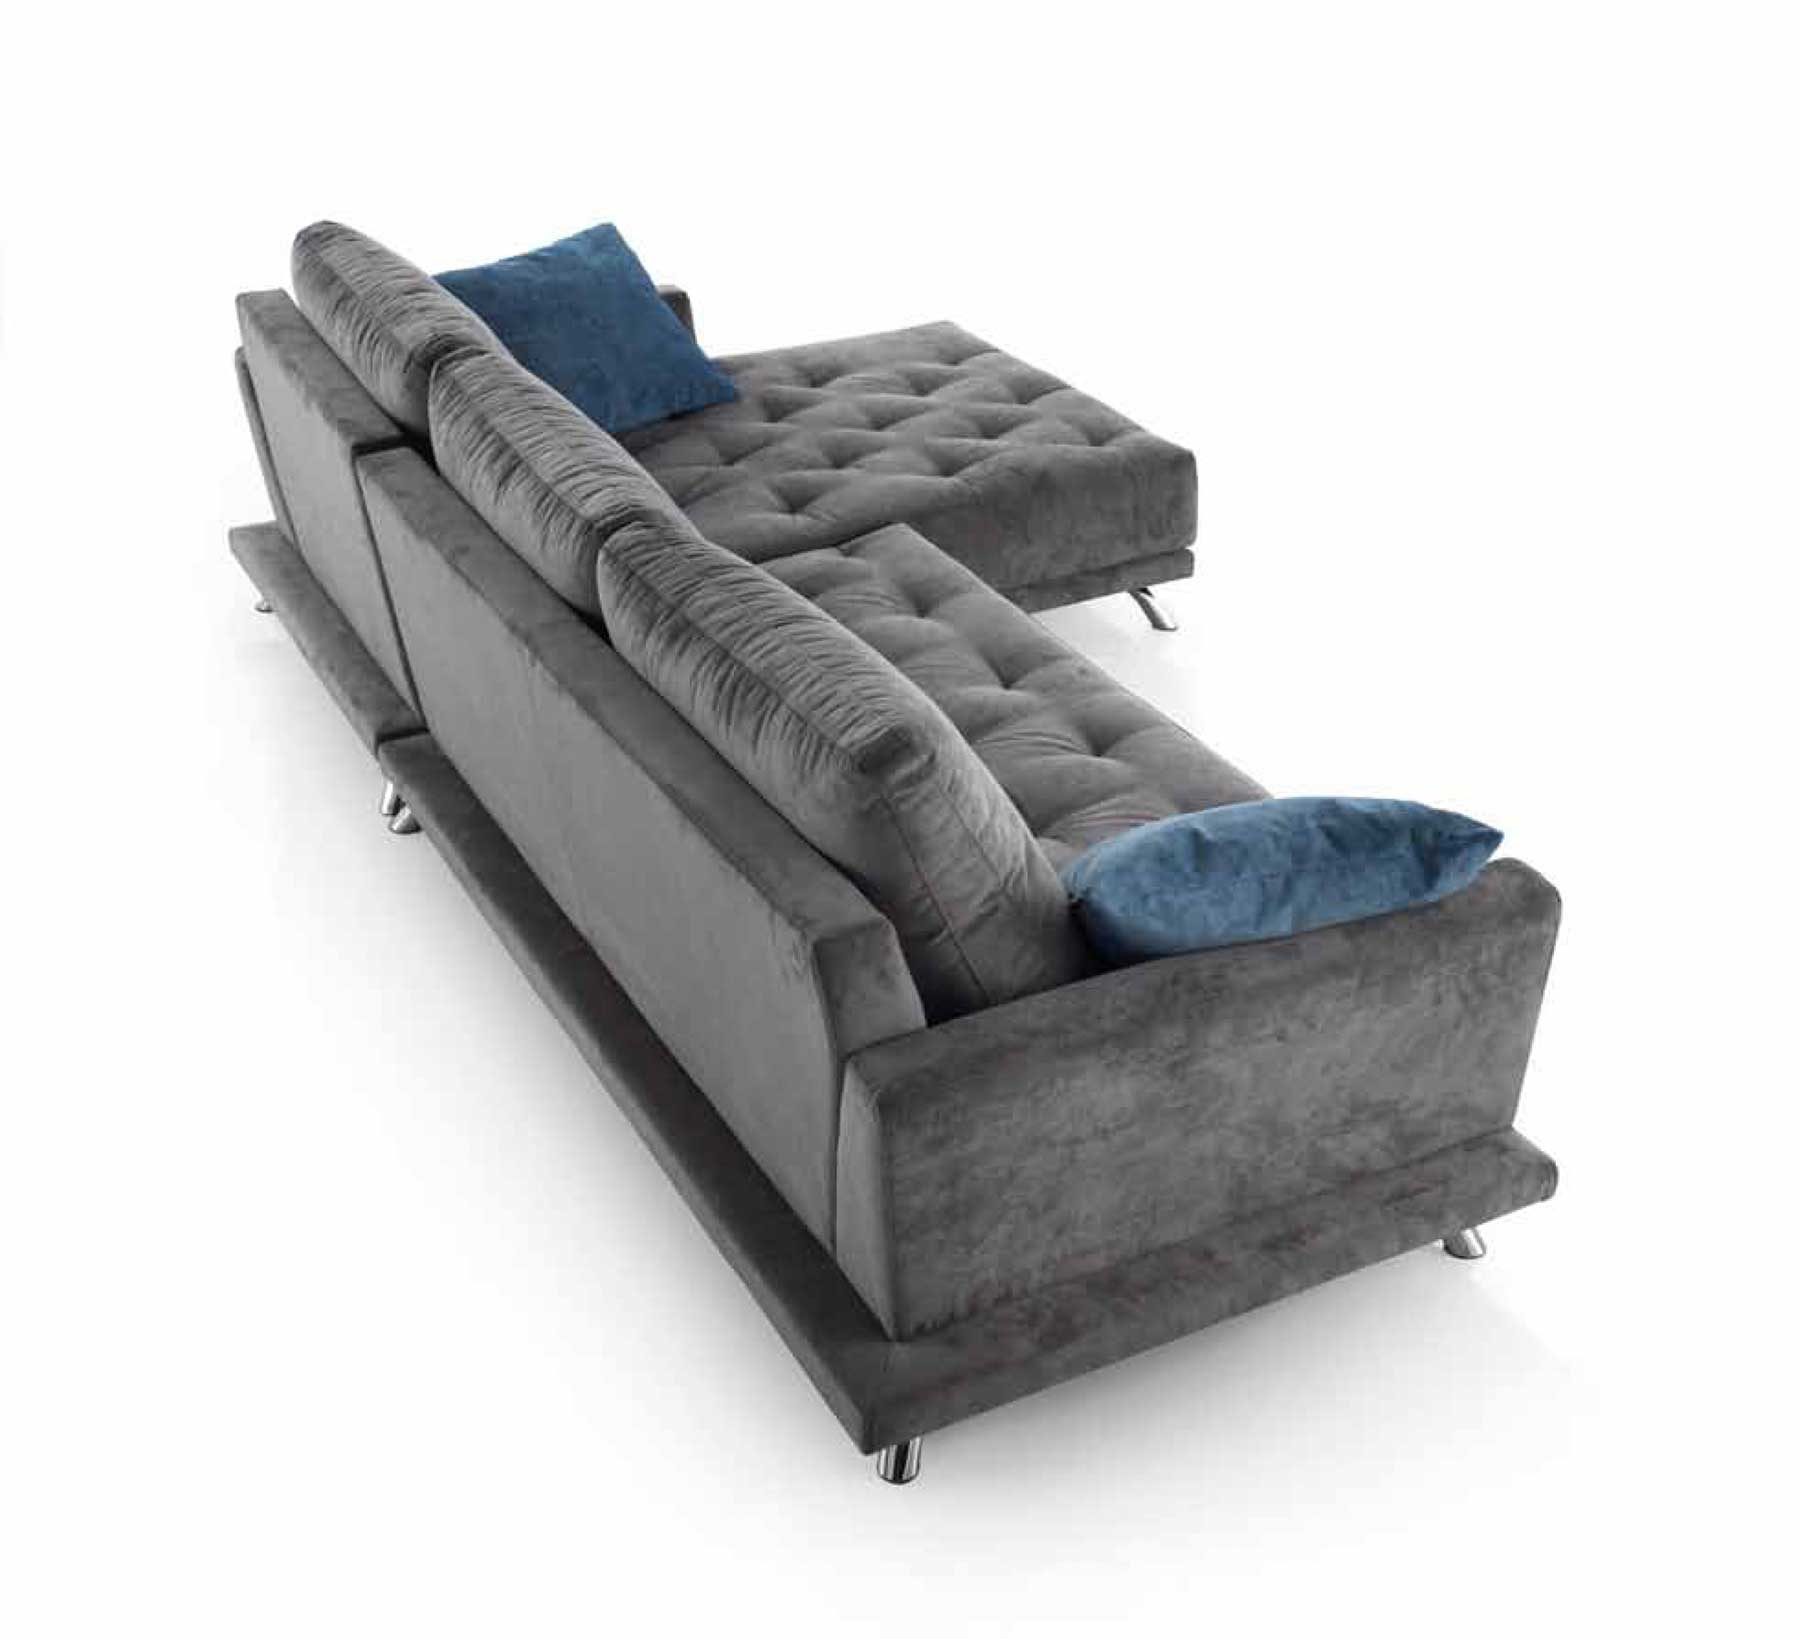 SOFA CHAISELONGUE ALLEGRO - R.G